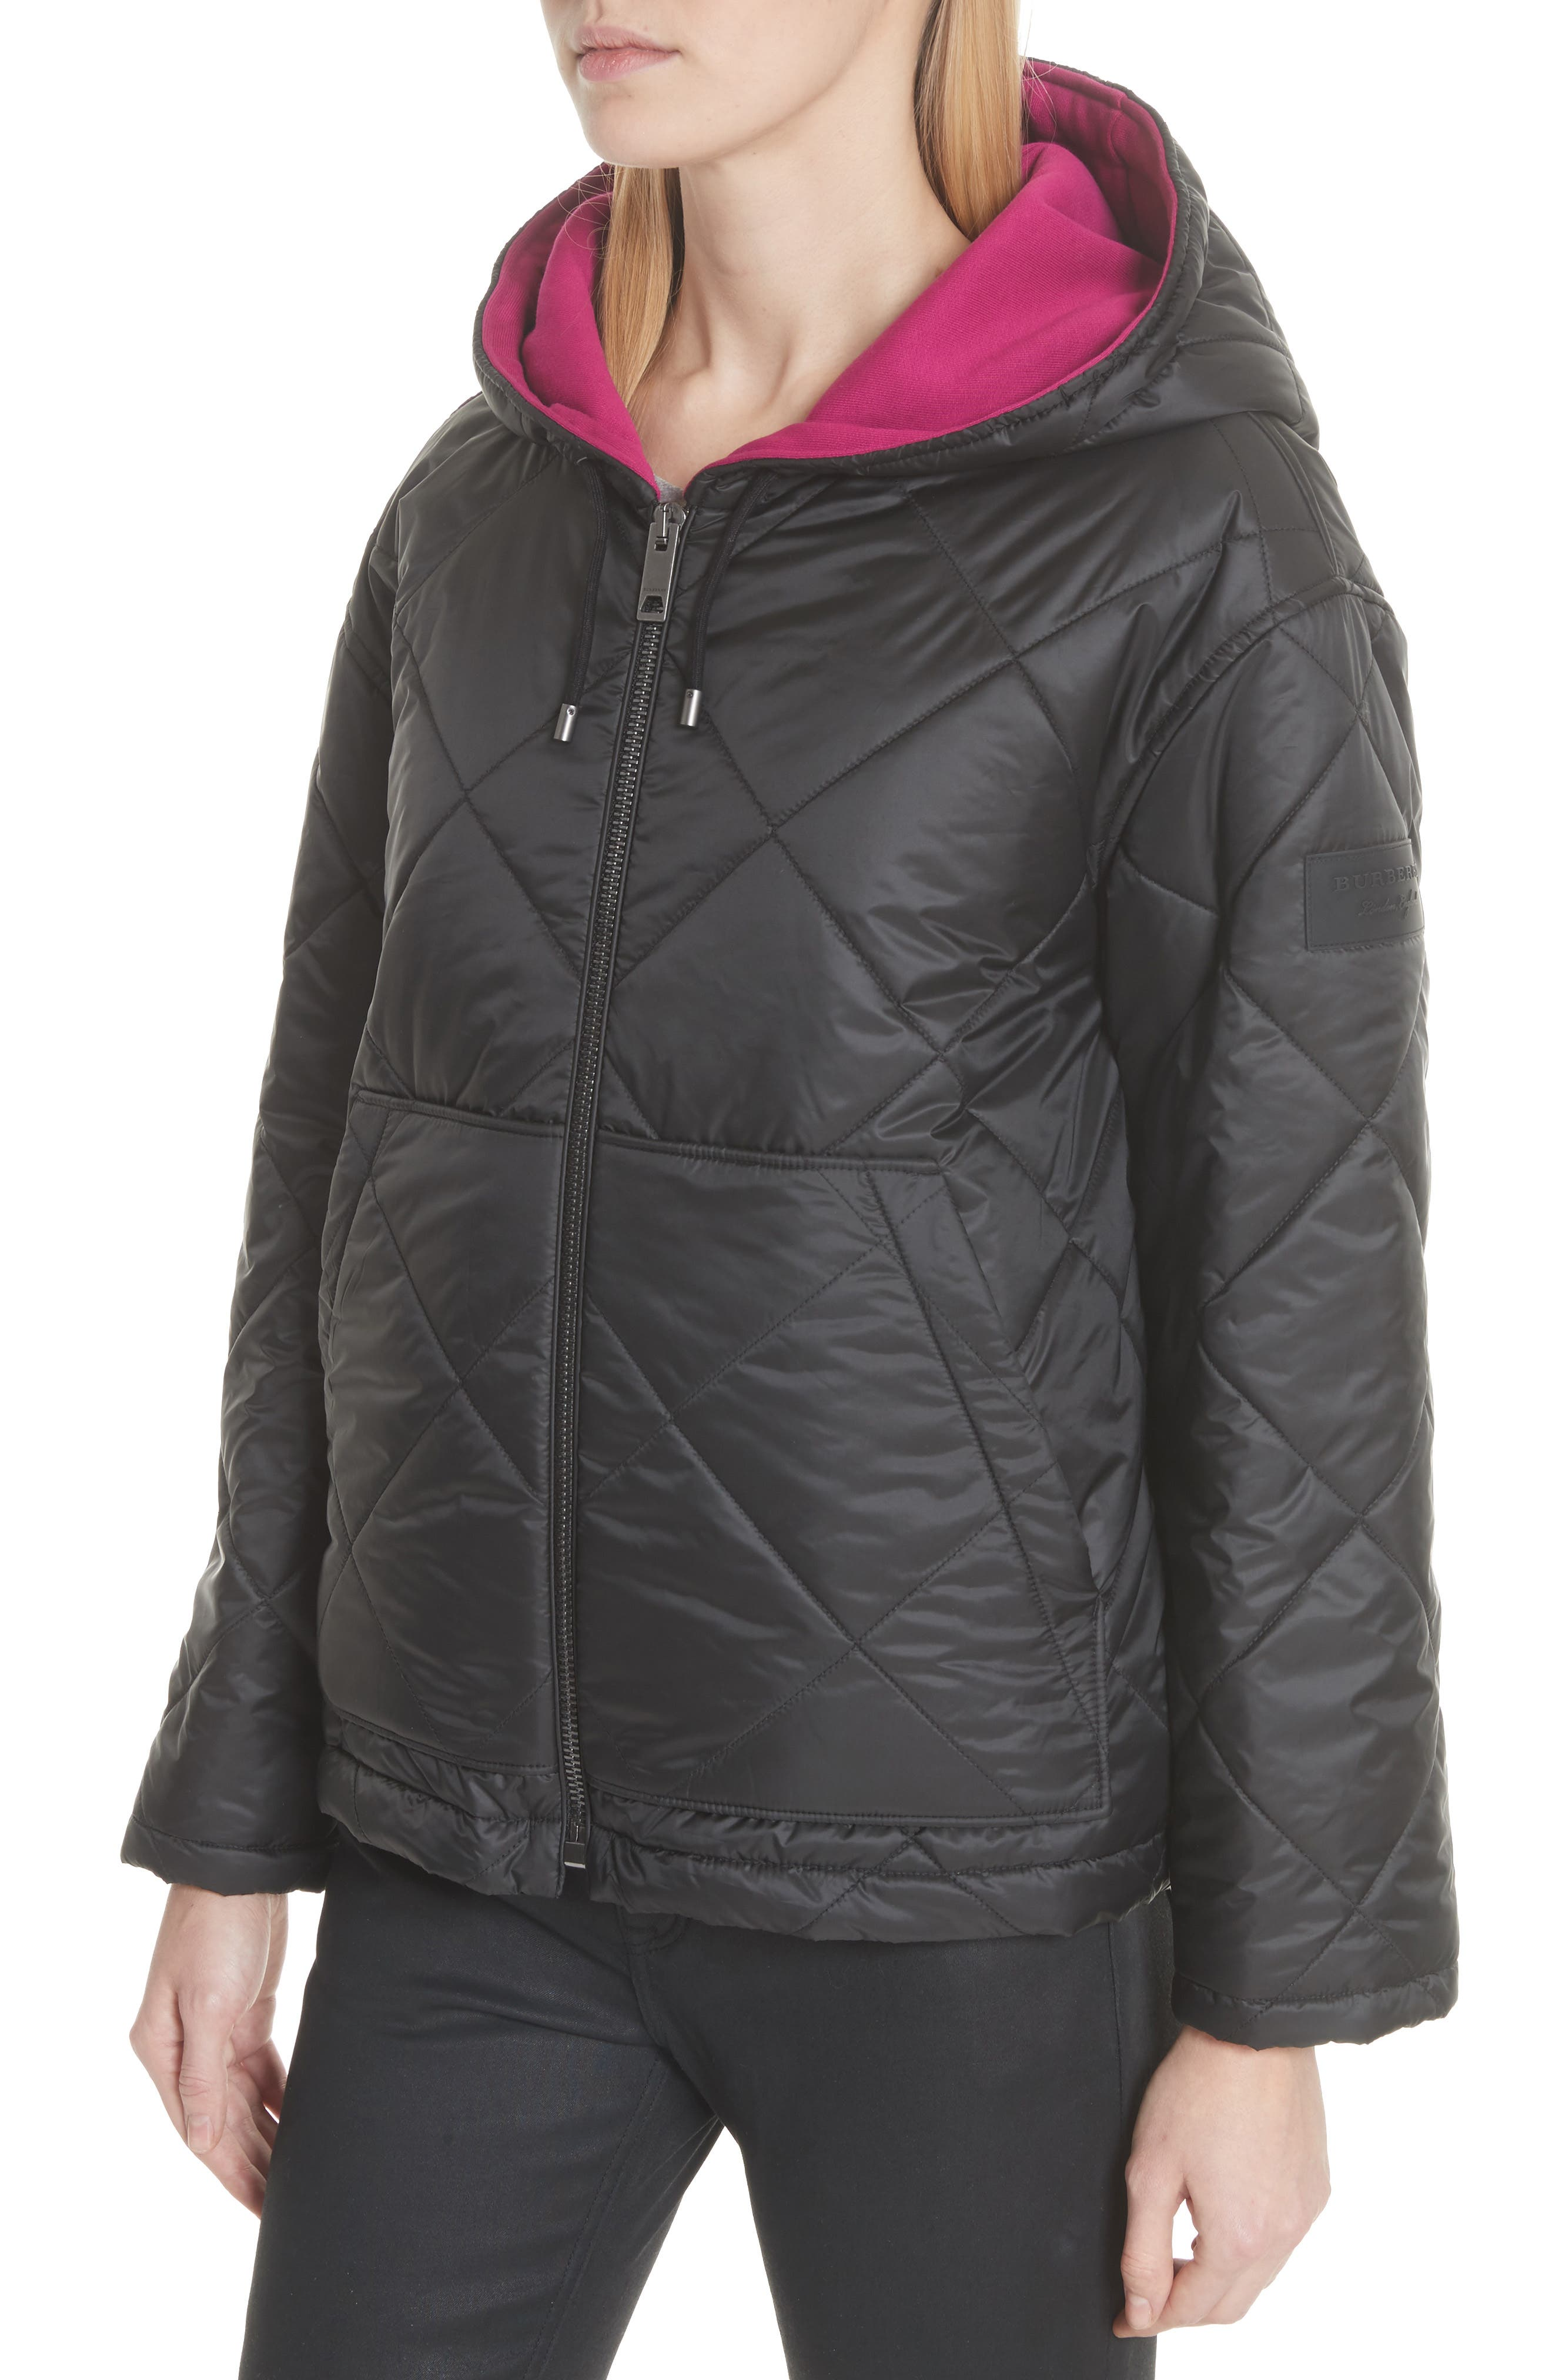 Tyneham Lined Quilted Jacket,                             Alternate thumbnail 4, color,                             Black